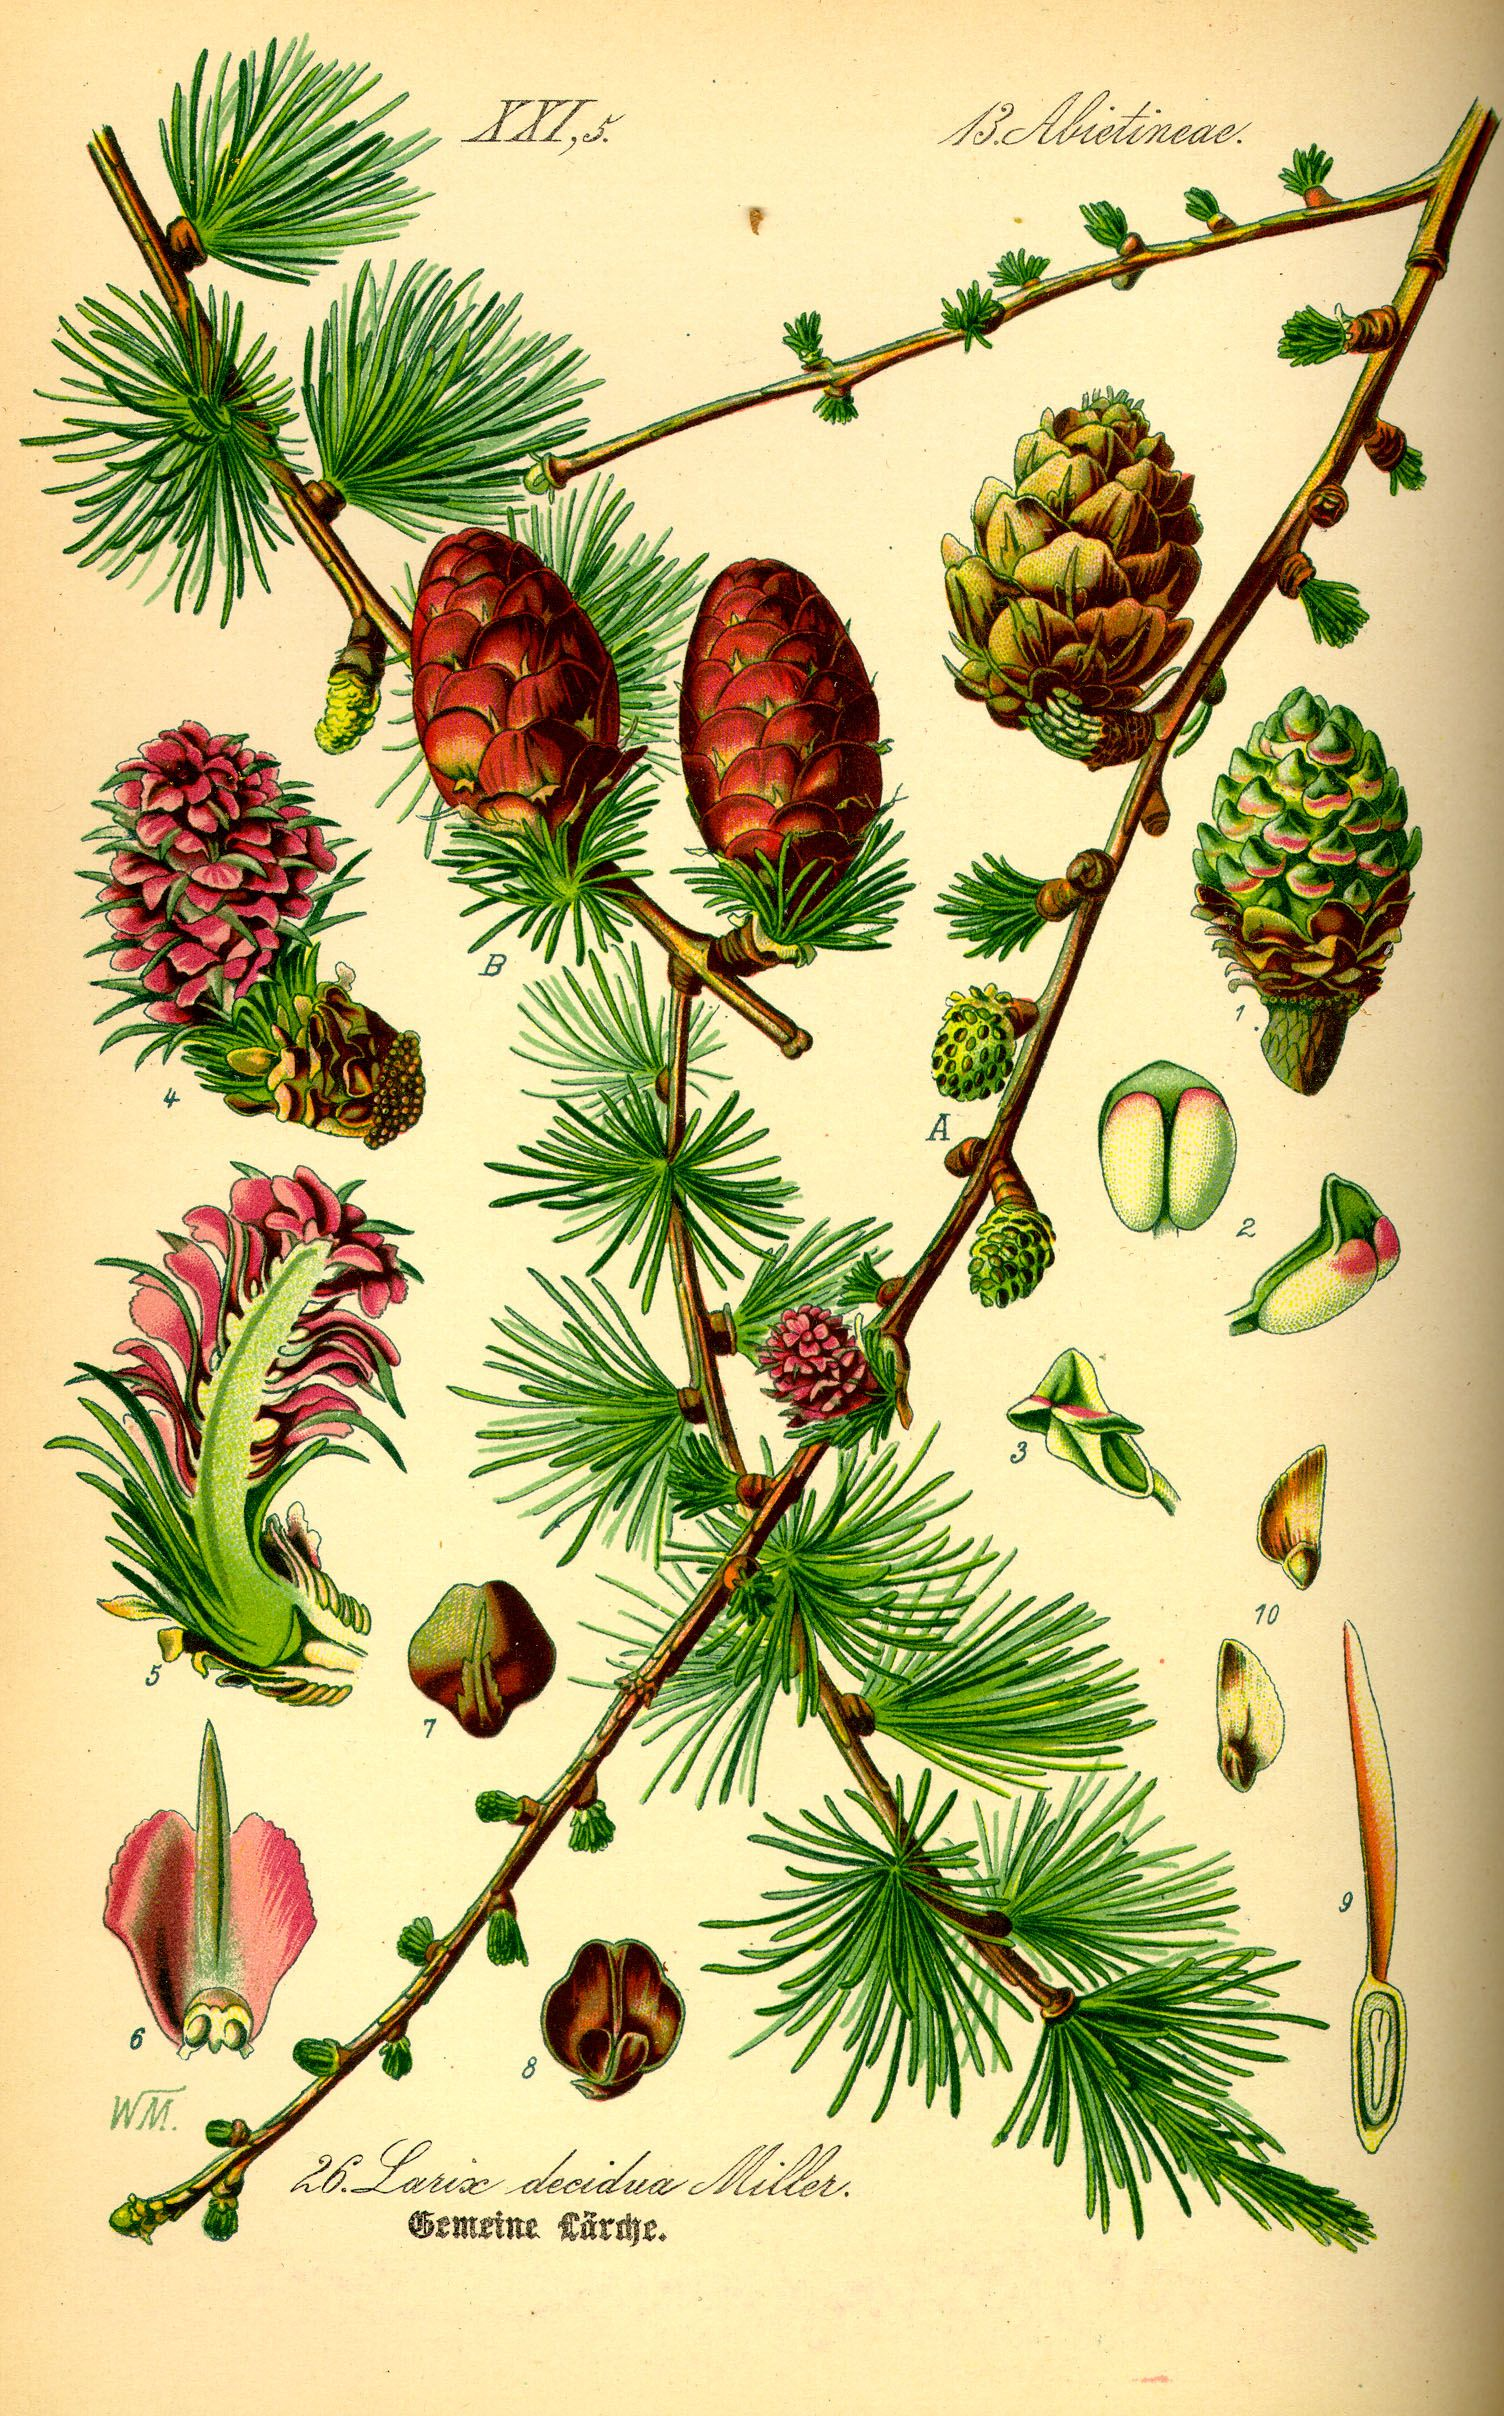 larch tree in spring - Google Search